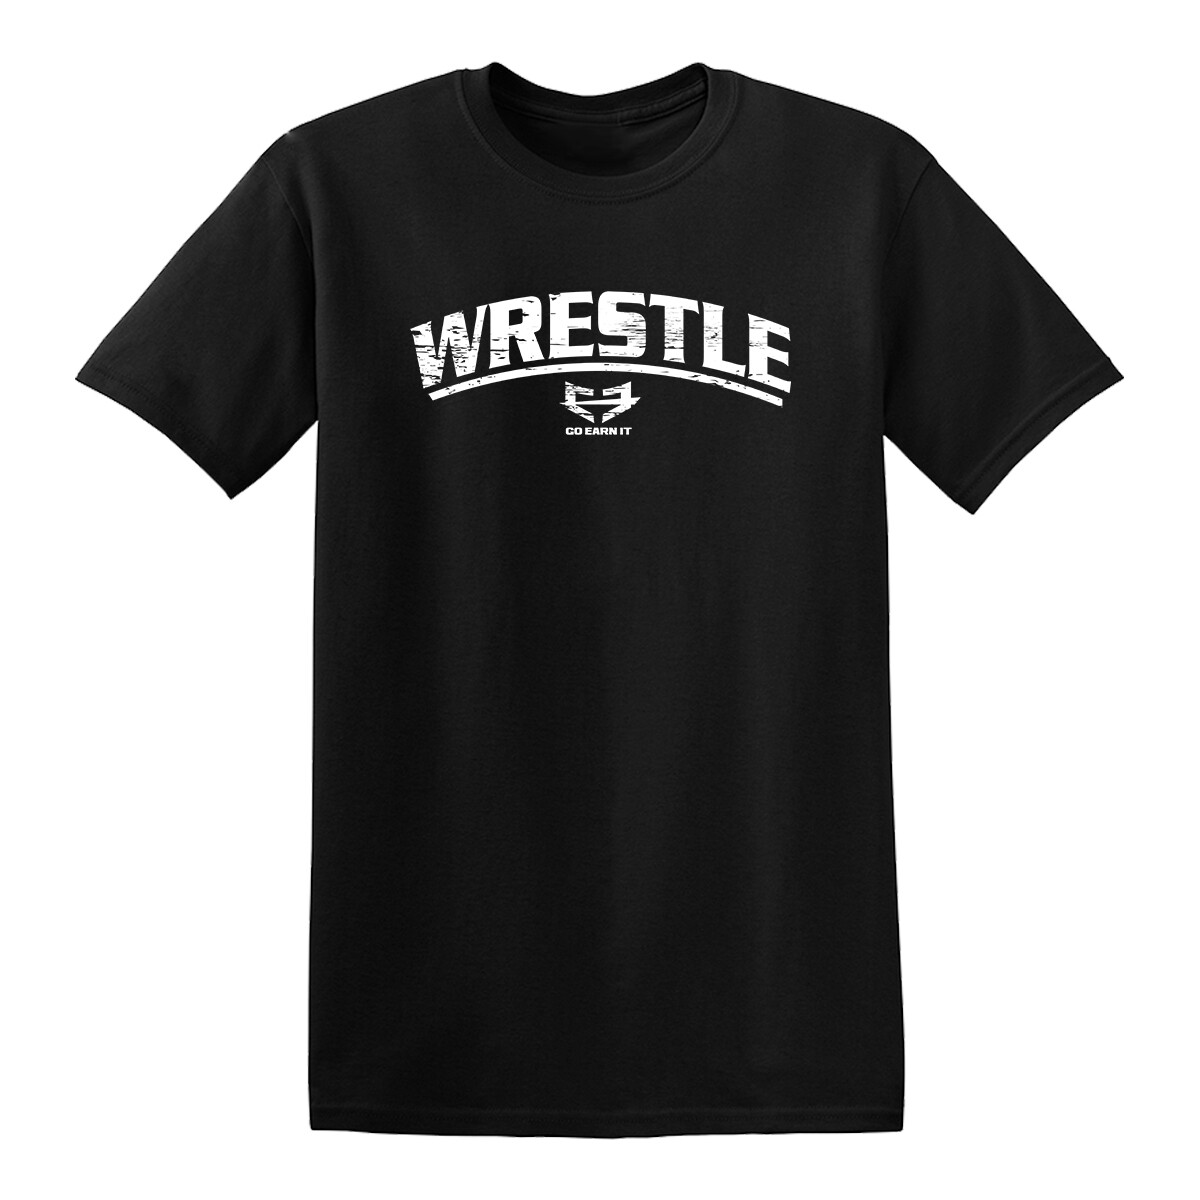 WRESTLE GRAPHIC TEE - BLACK AND WHITE